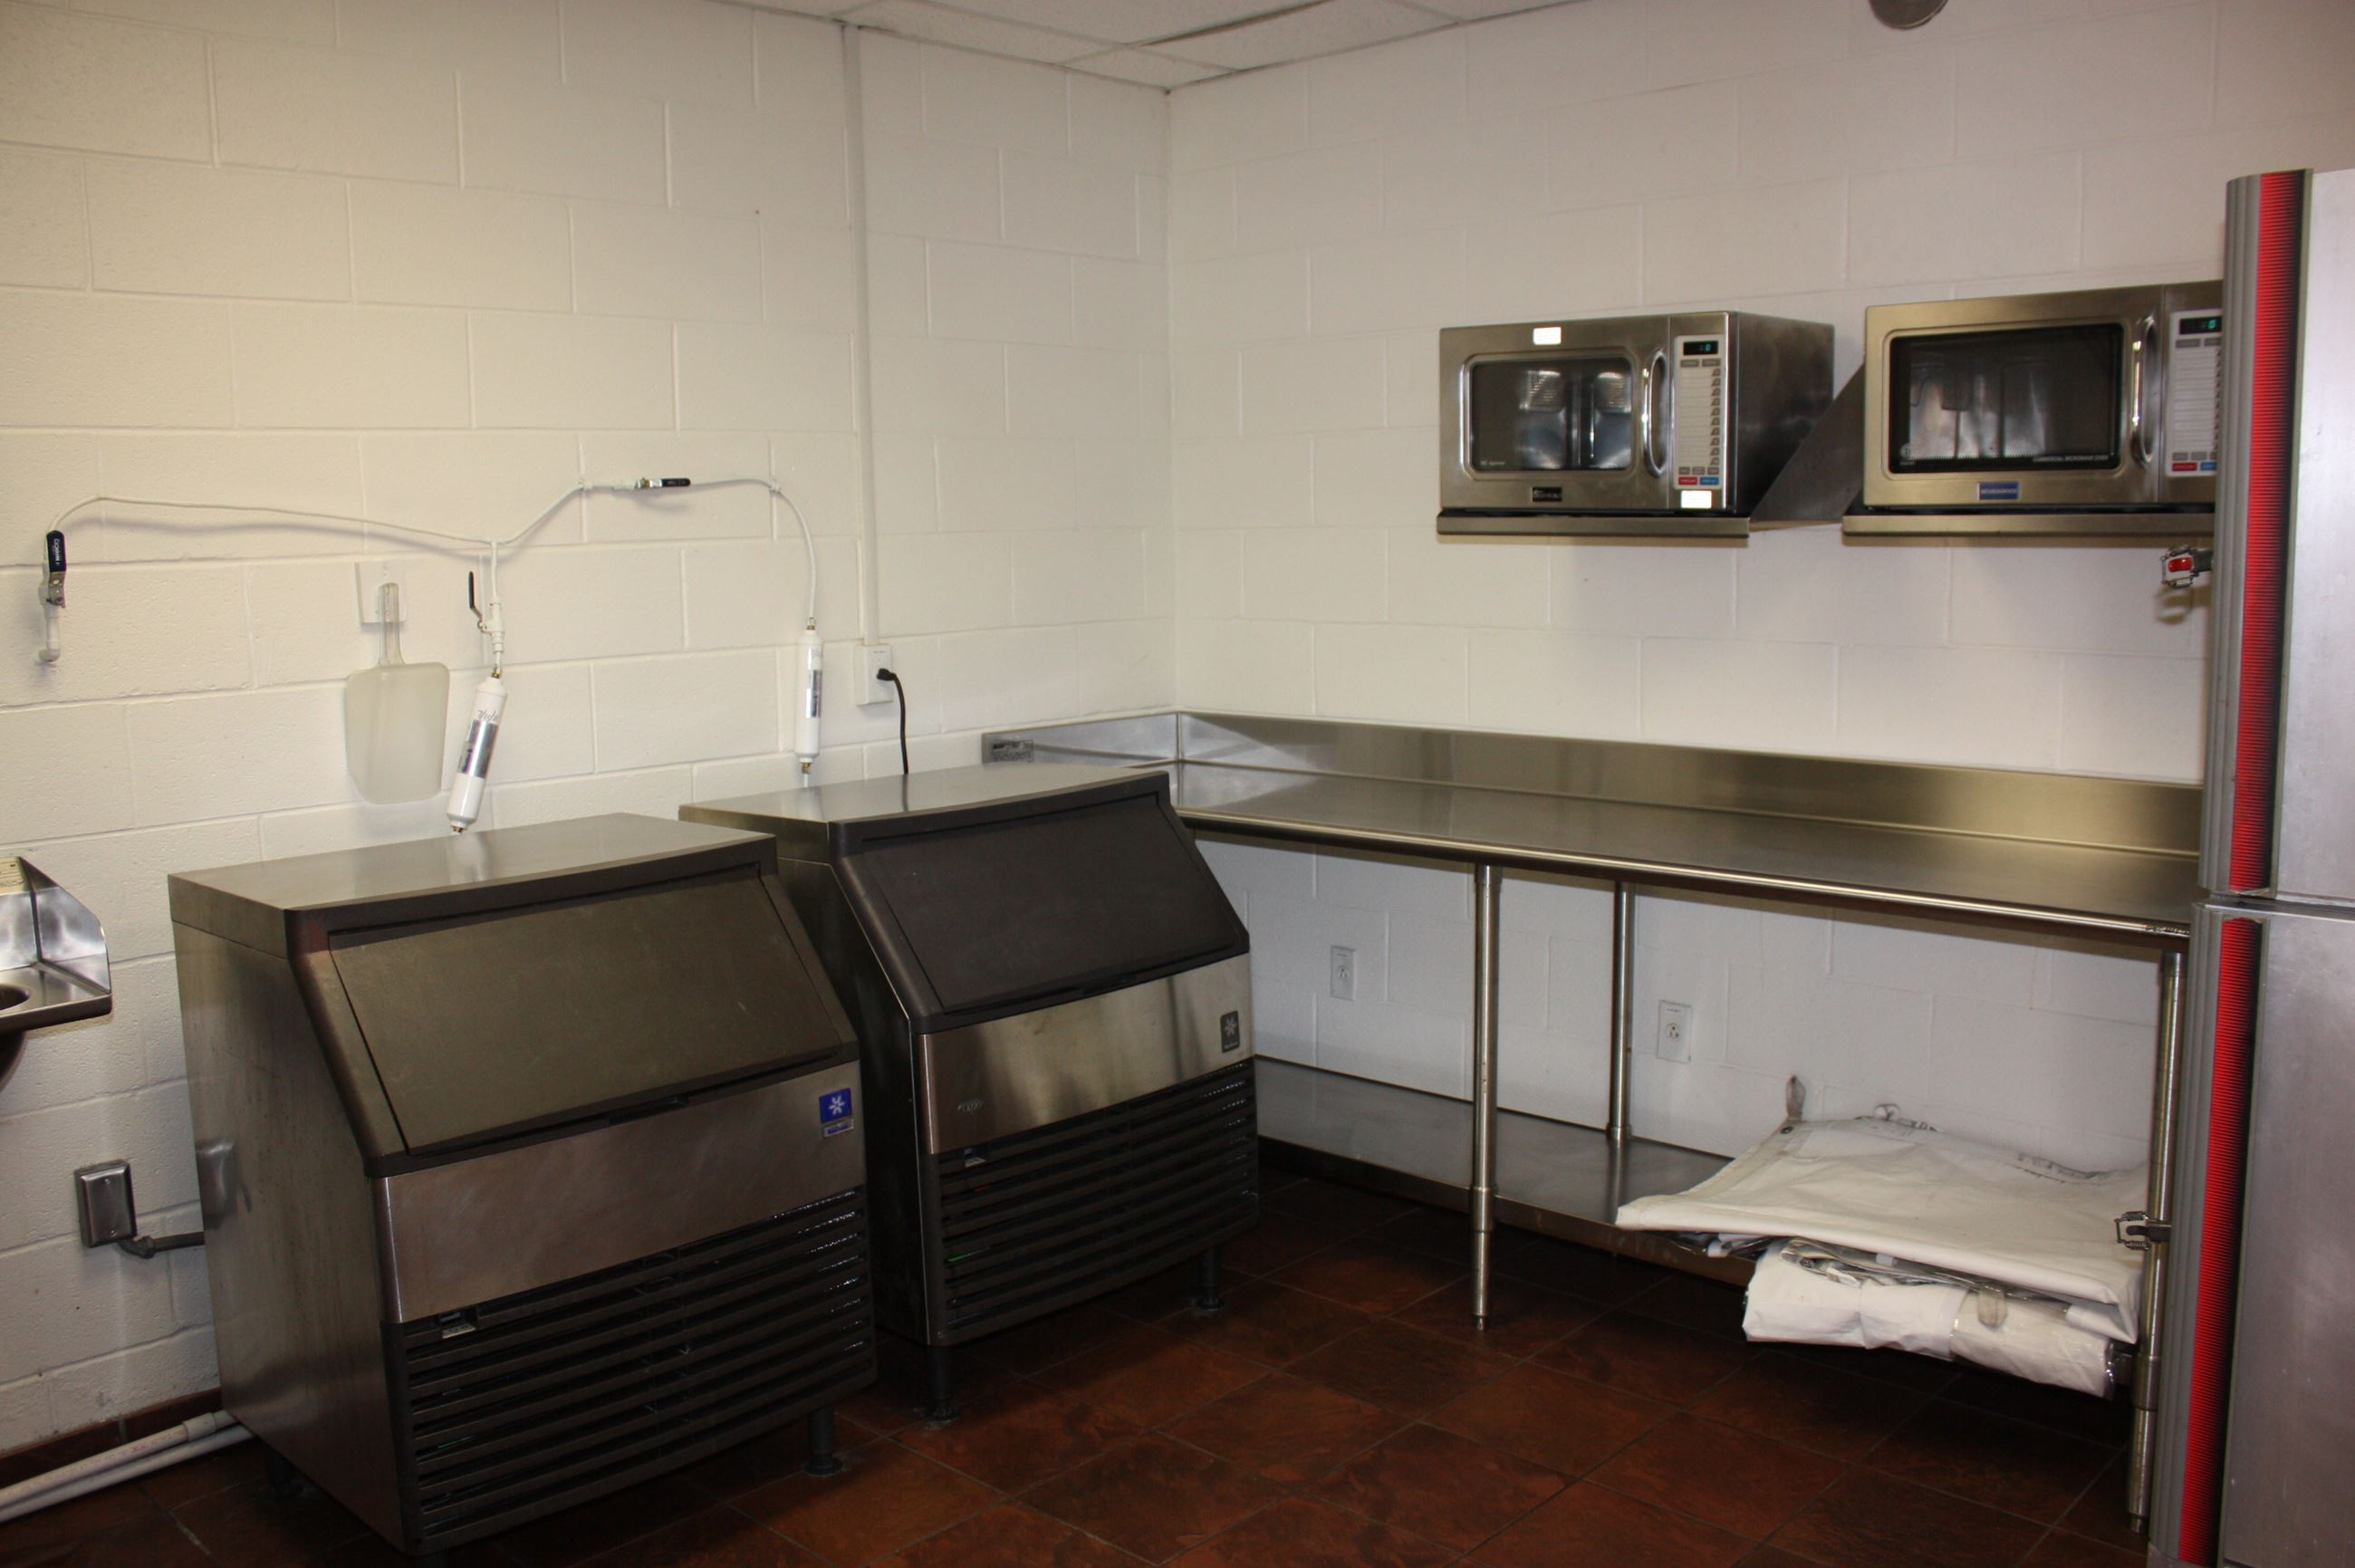 Ice Machines, Microwaves and Prep Area